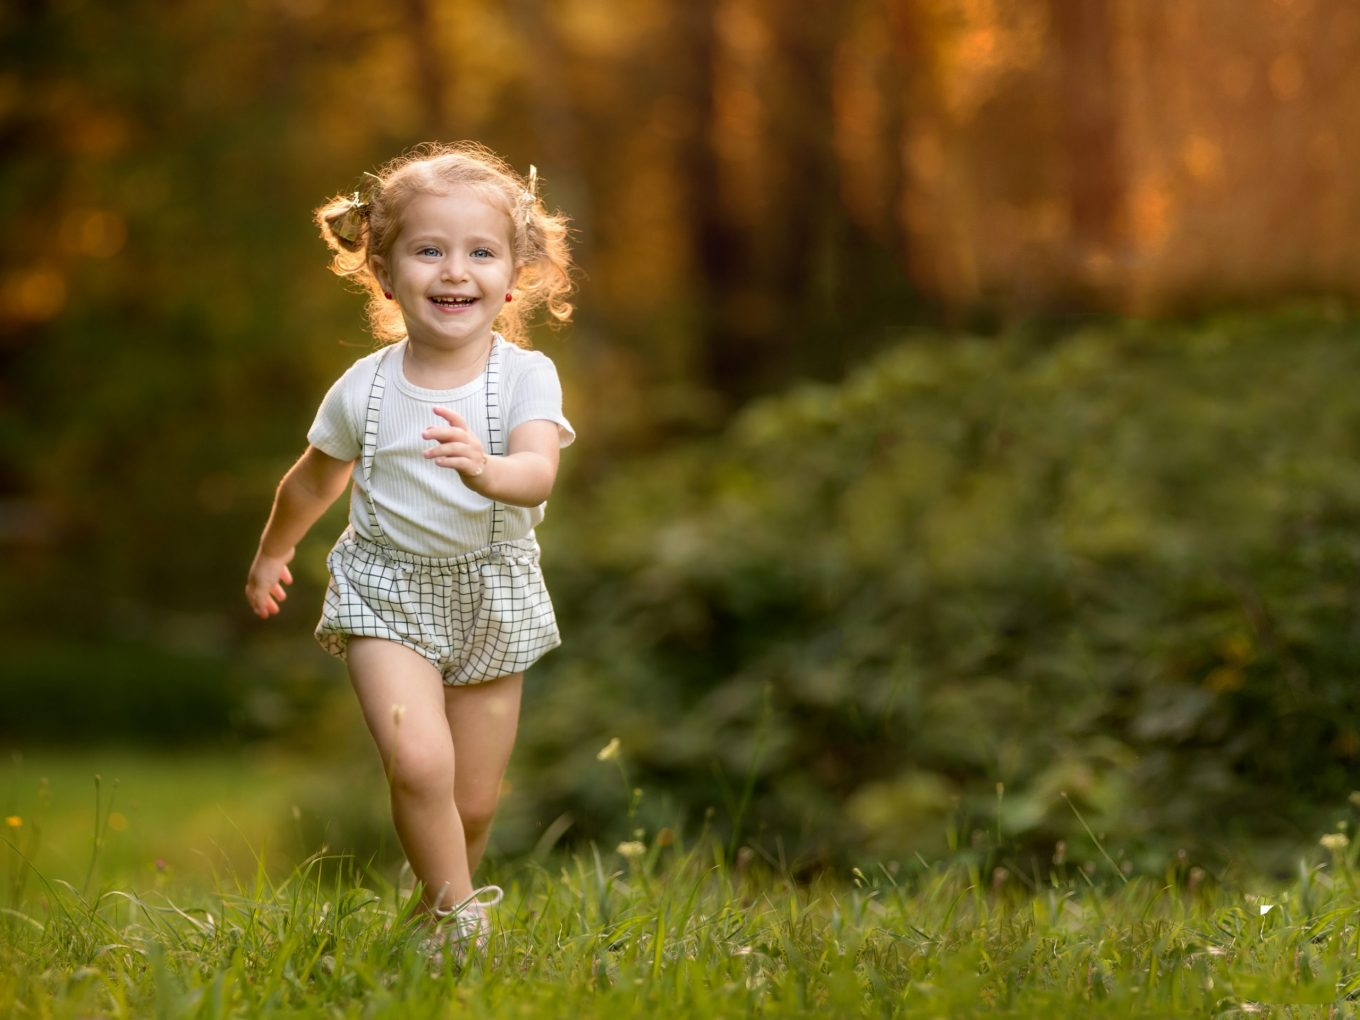 Woodbourne NY outdoor photo session with little girl taken during golden hour